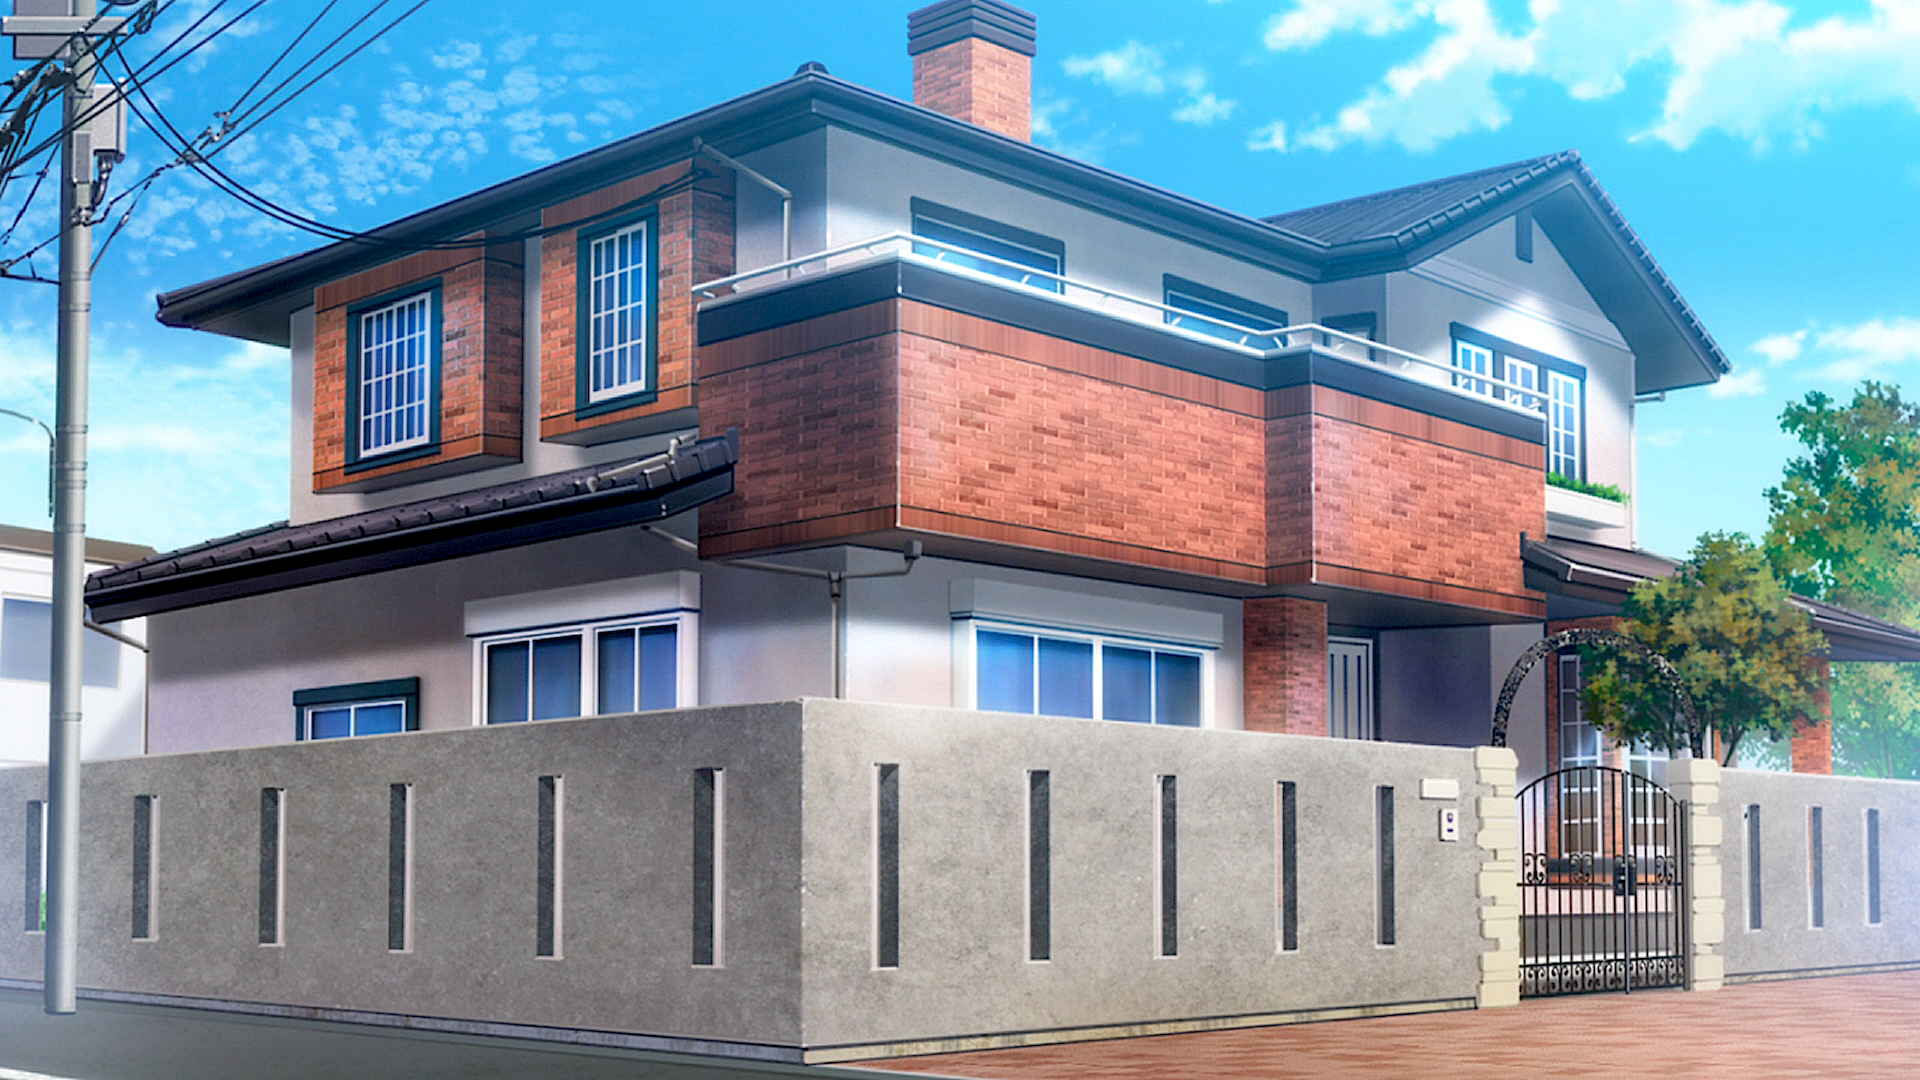 Momokino Residence HD Wallpaper Background Image 1920x1080 1920x1080